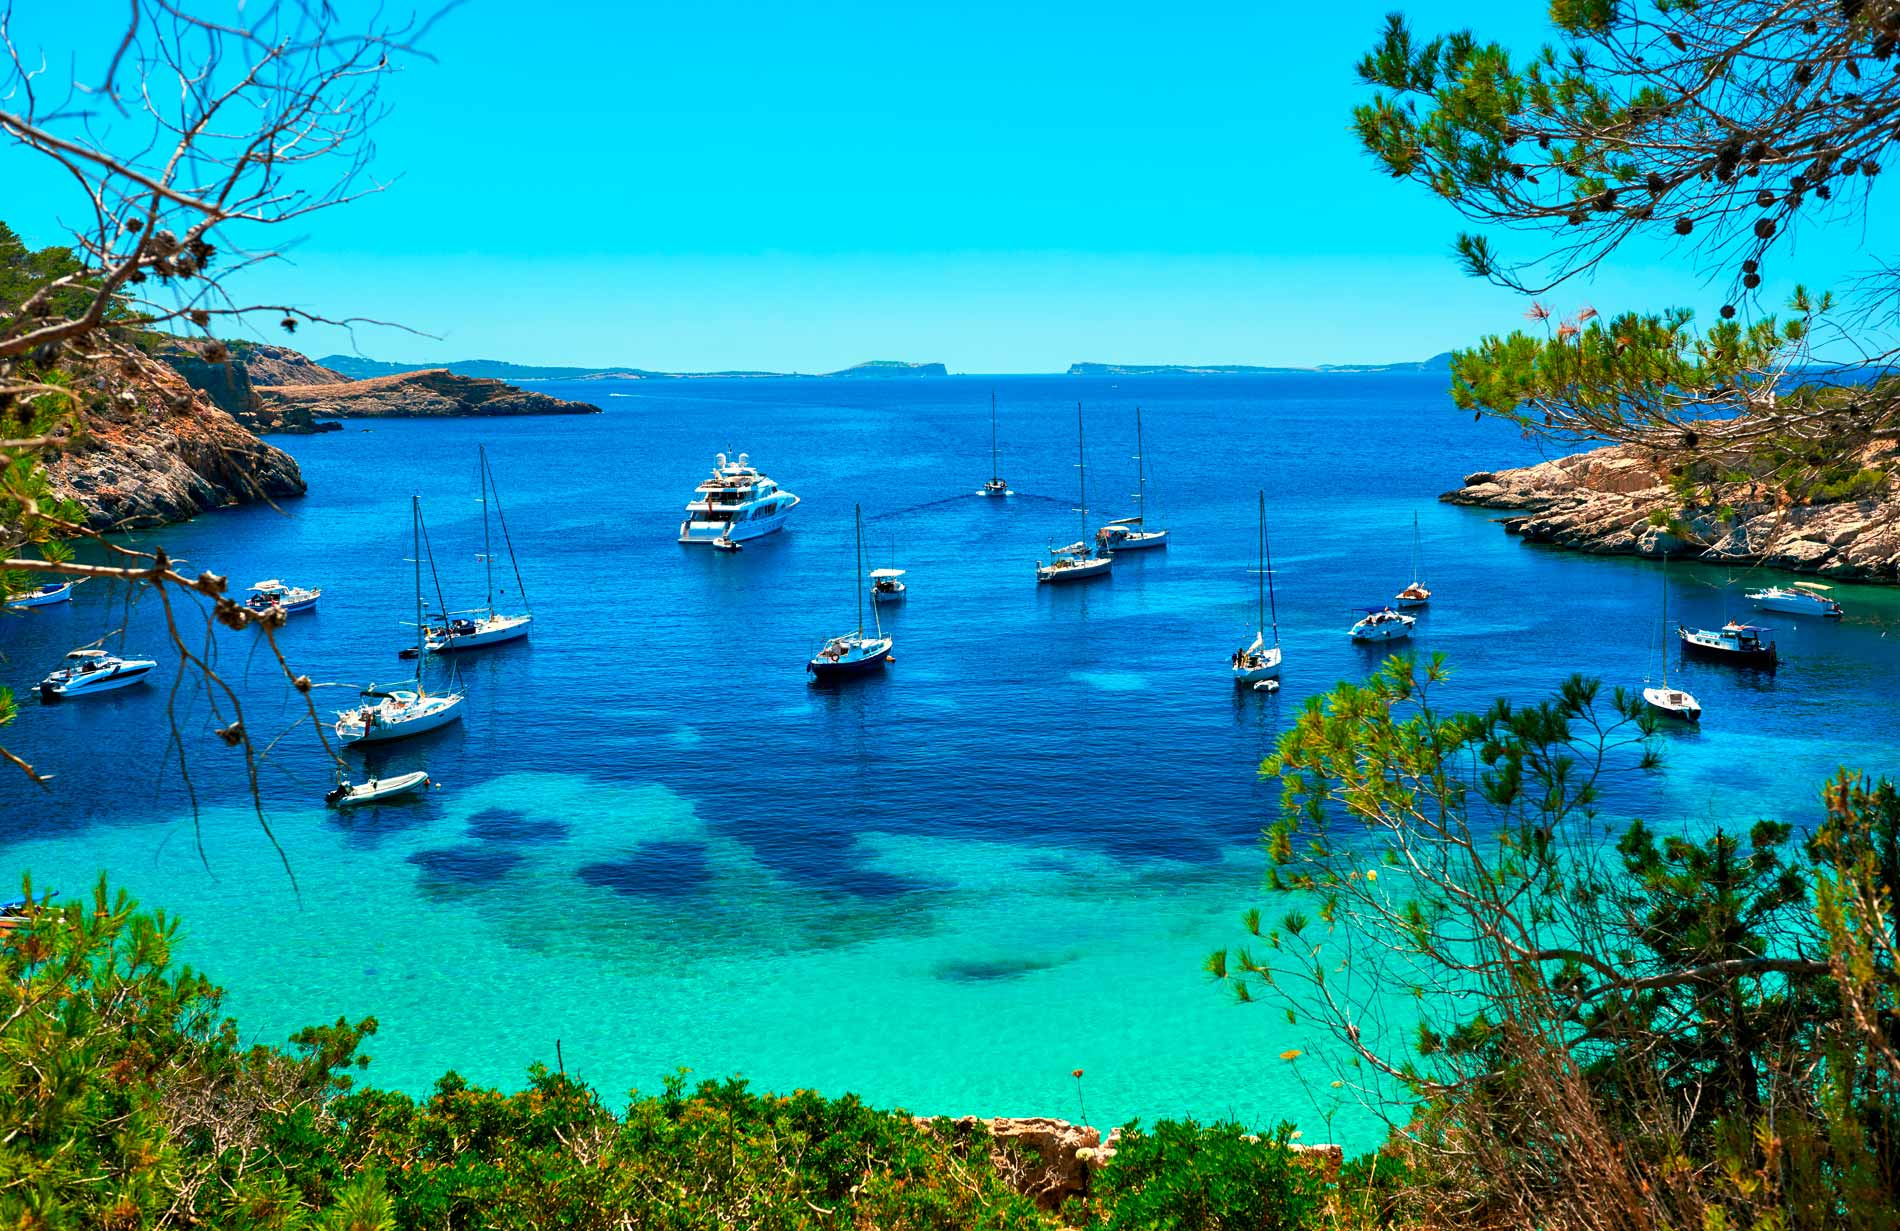 Balearic Islands: what to see, and the 10 most beautiful beaches